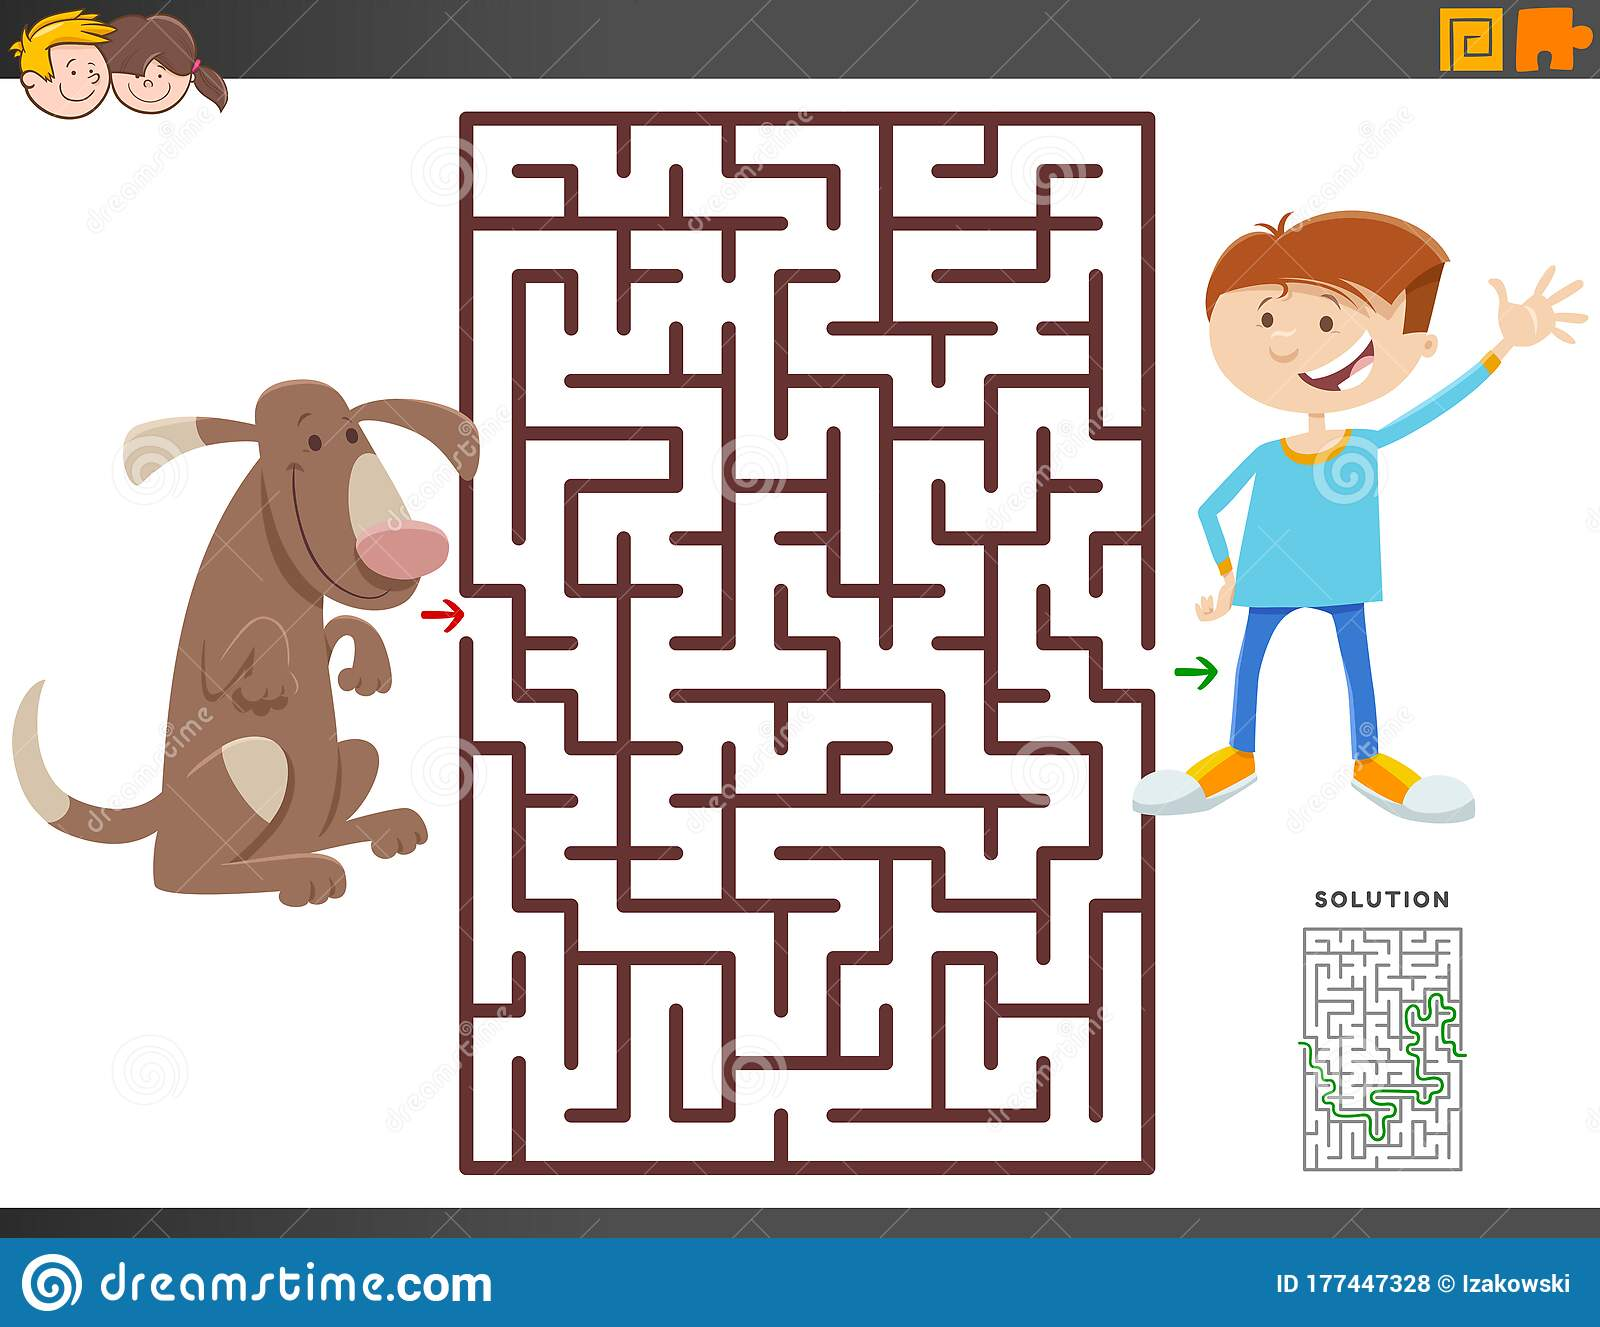 Maze Game With Cartoon Boy And Dog Stock Vector